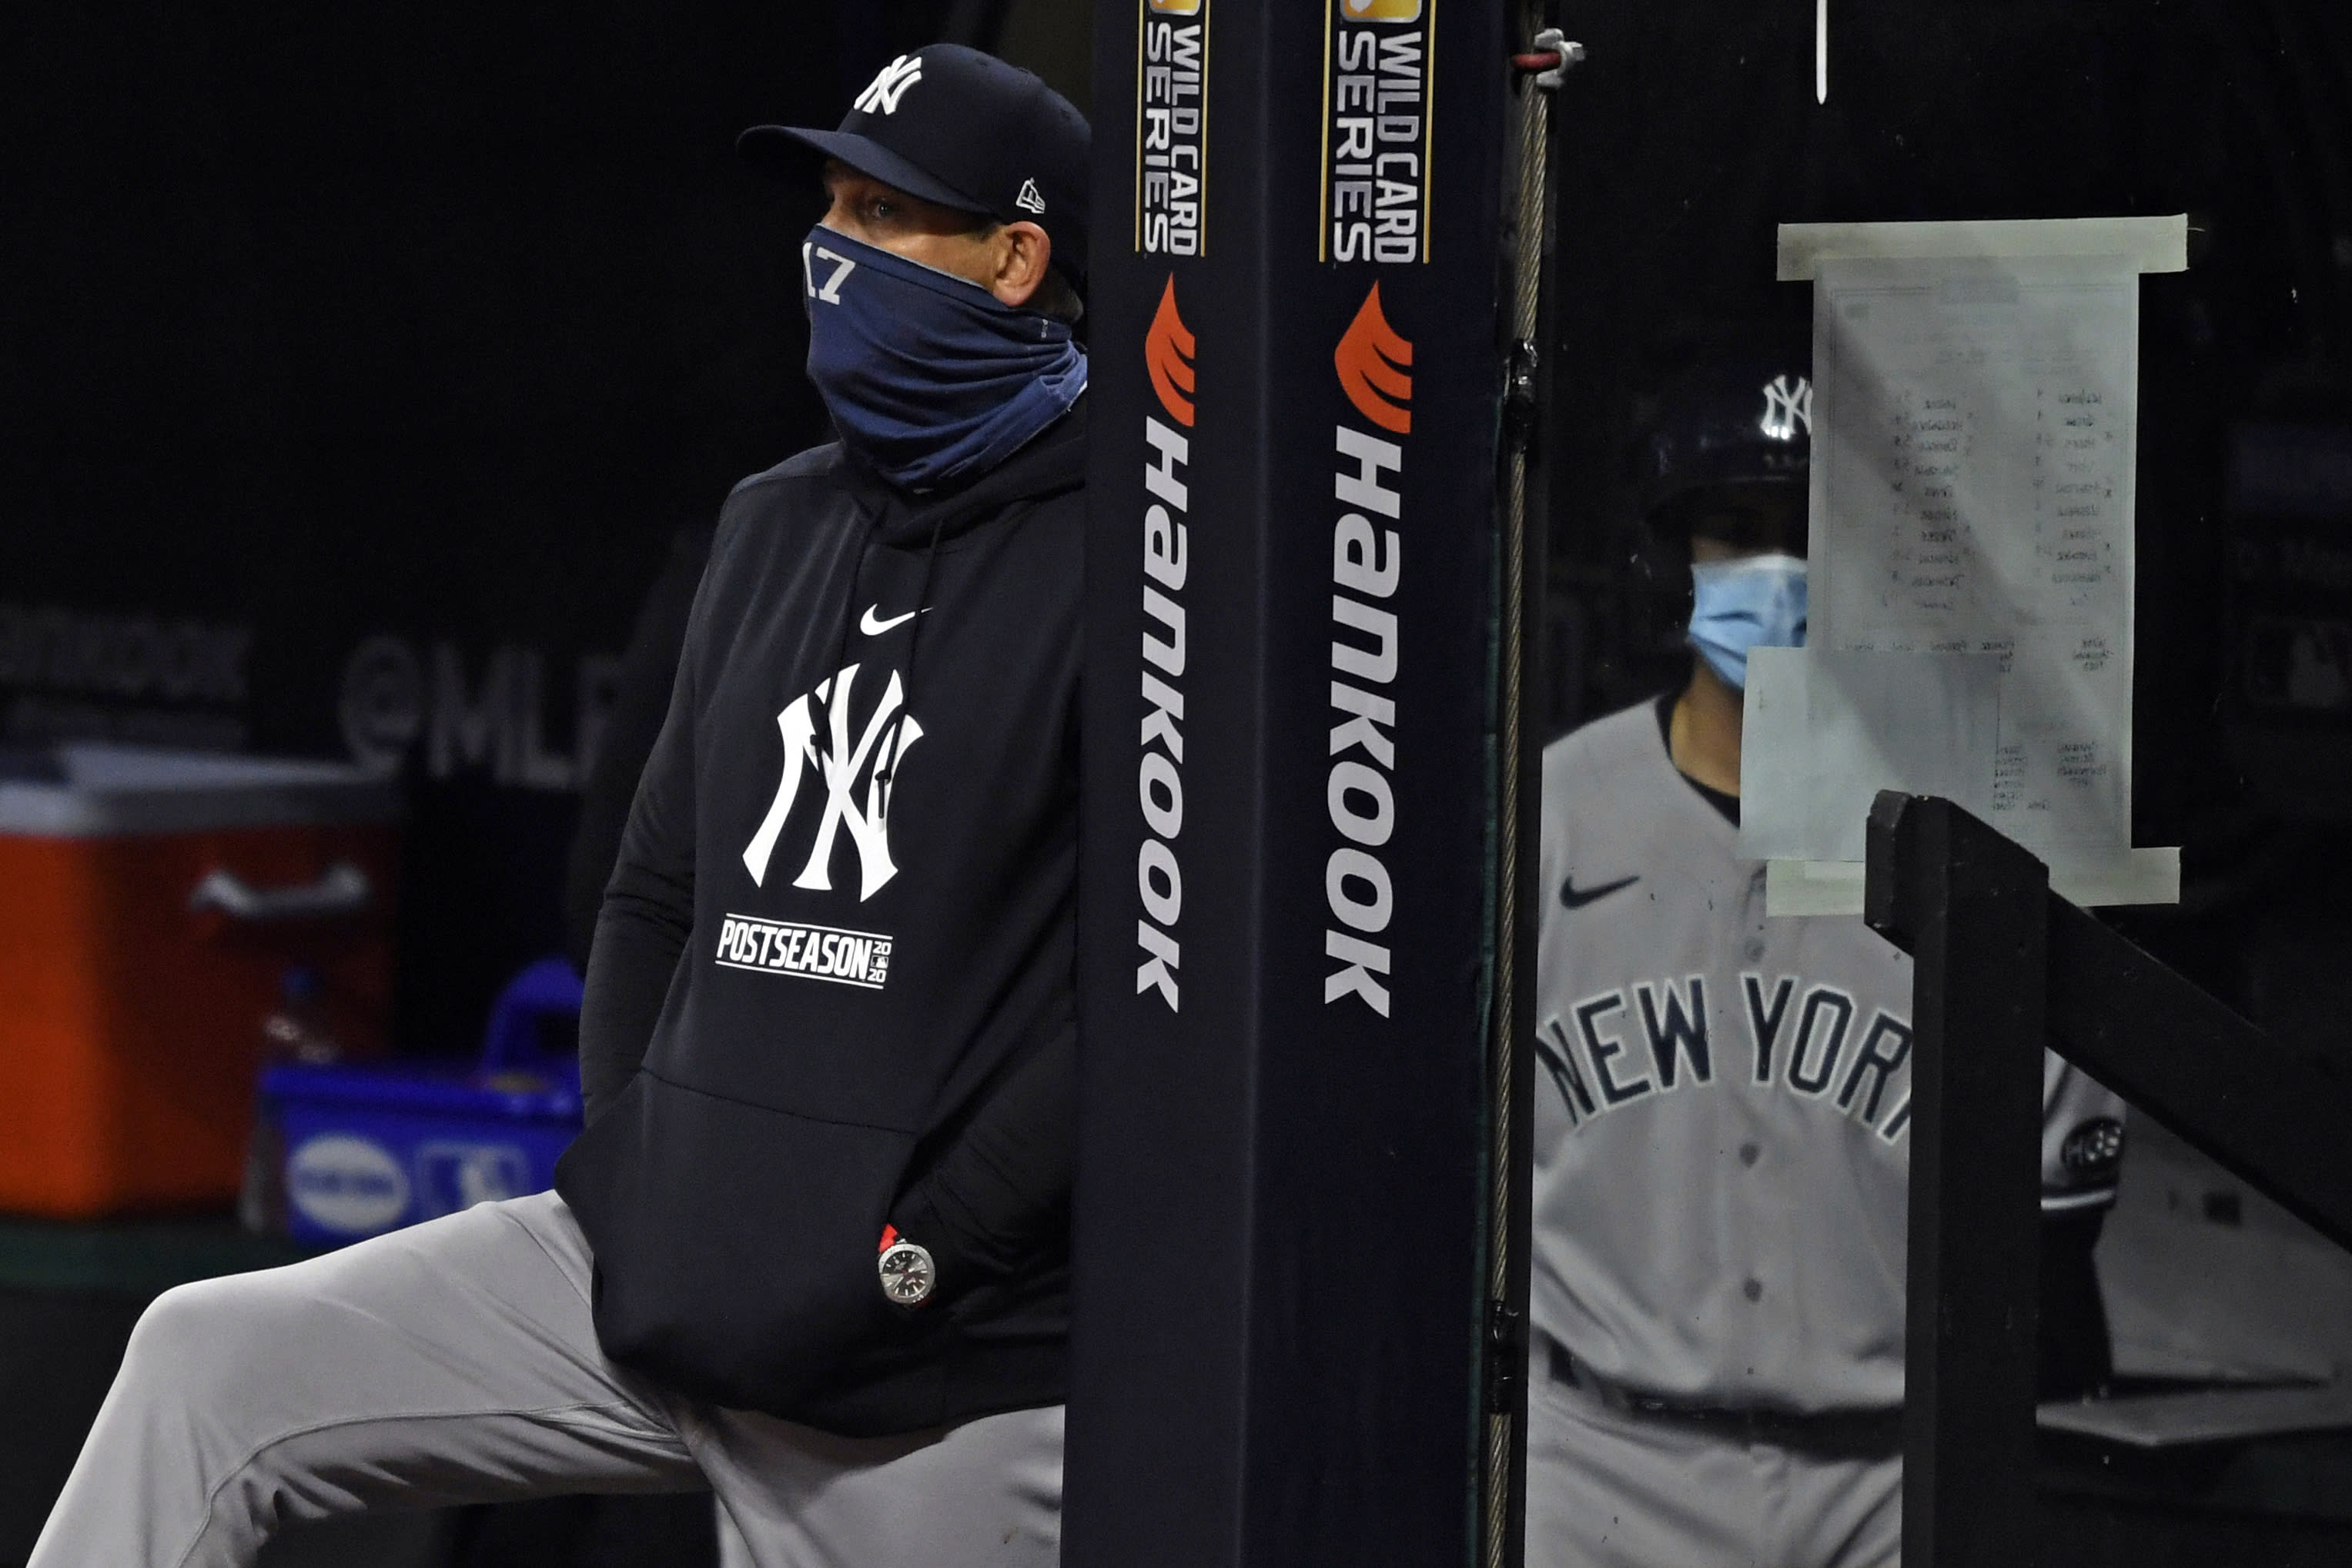 FILE - In this Tuesday, Sept. 29, 2020, file photo, New York Yankees manager Aaron Boone watches from the dugout in the sixth inning of Game 1 of an American League wild-card baseball series against the Cleveland Indians in Cleveland. (AP Photo/David Dermer, File)